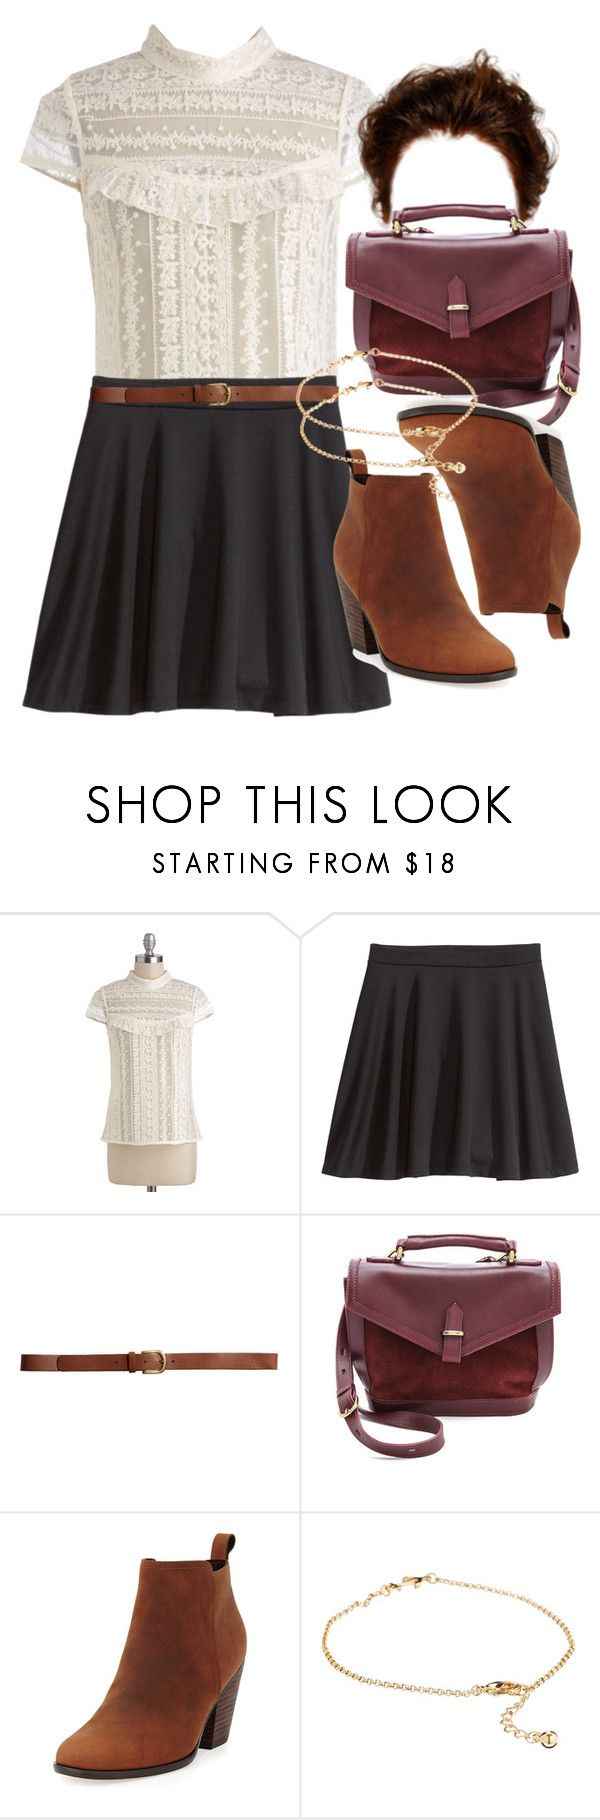 """Allison Inspired Birthday Dinner Outfit"" by veterization ❤ liked on Polyvore featuring H&M, Madewell, Cole Haan and ASOS"